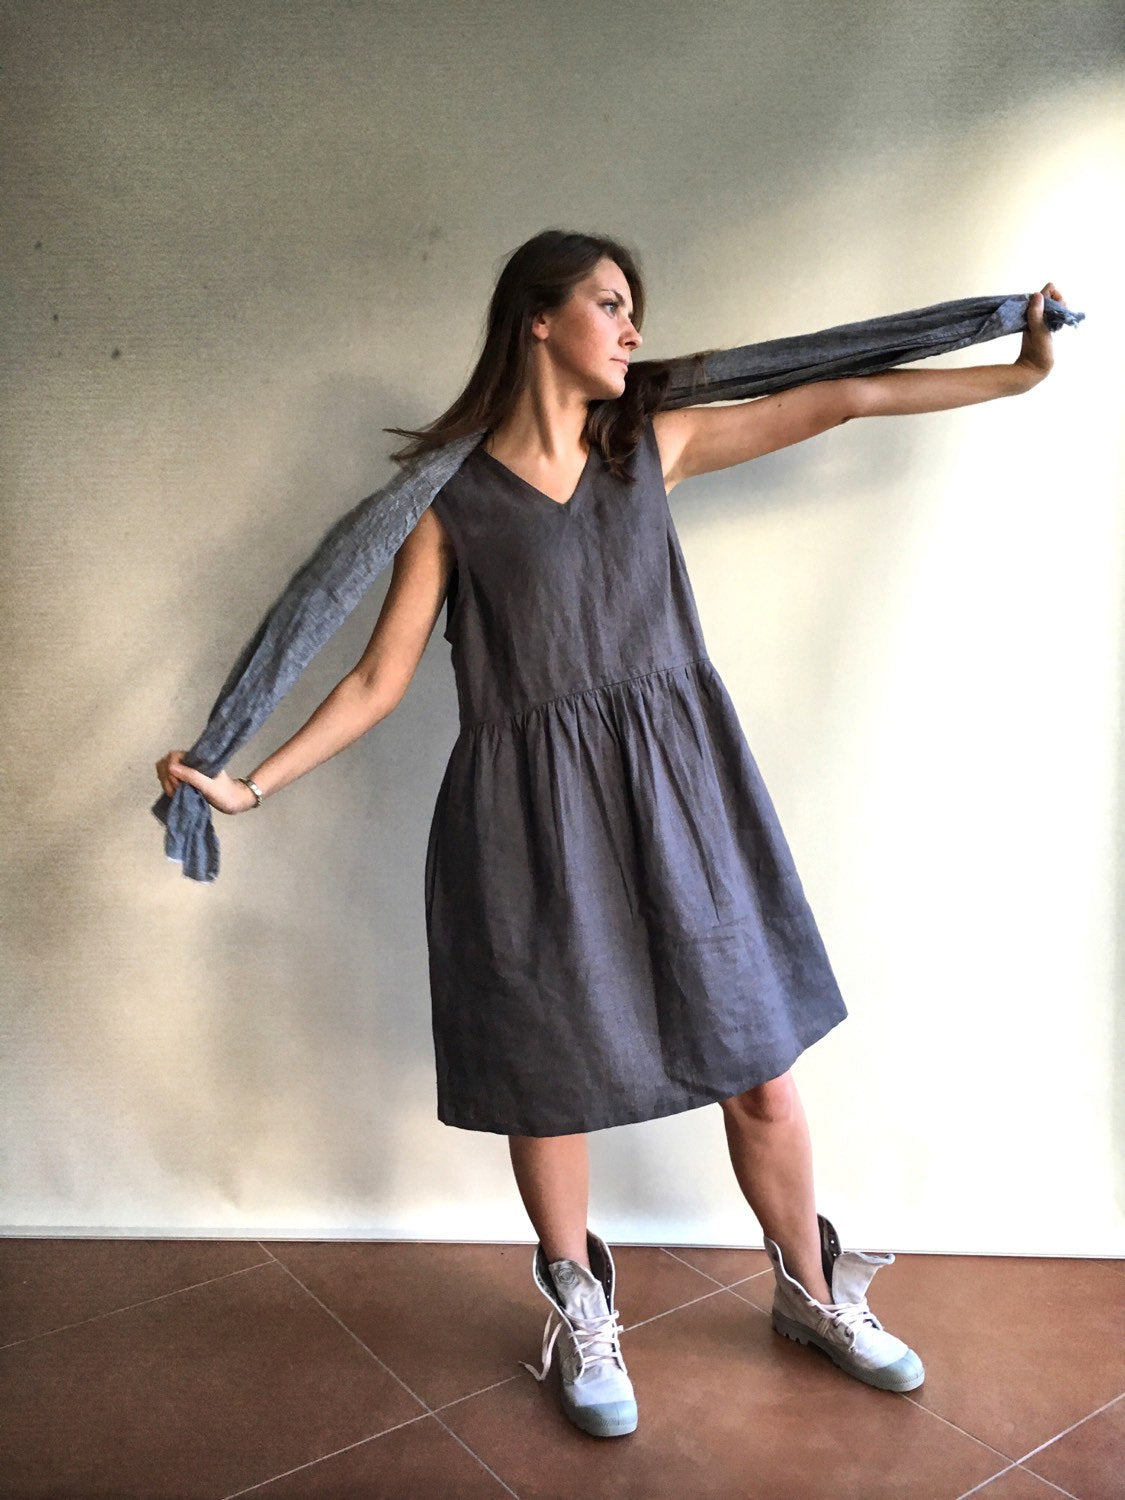 dress with v neck and pockets linen dresses for woman Loose dress jumper Grey Sleeveless Linen Dress Linen pinafore dress womens dress